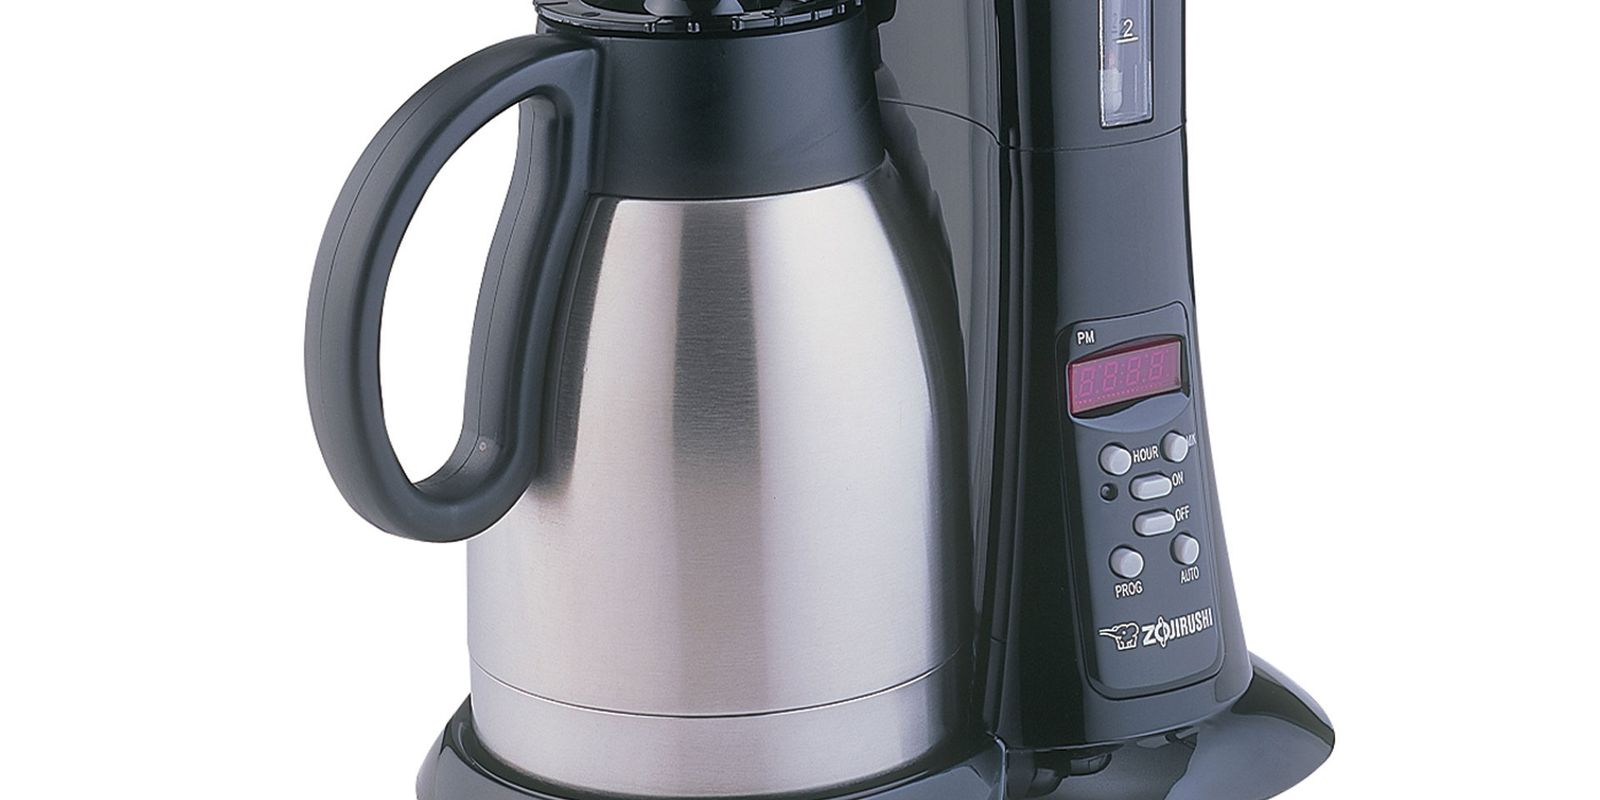 Zojirushi Fresh Brew Stainless Steel Thermal Carafe Coffee Maker #EC-BD15 Review